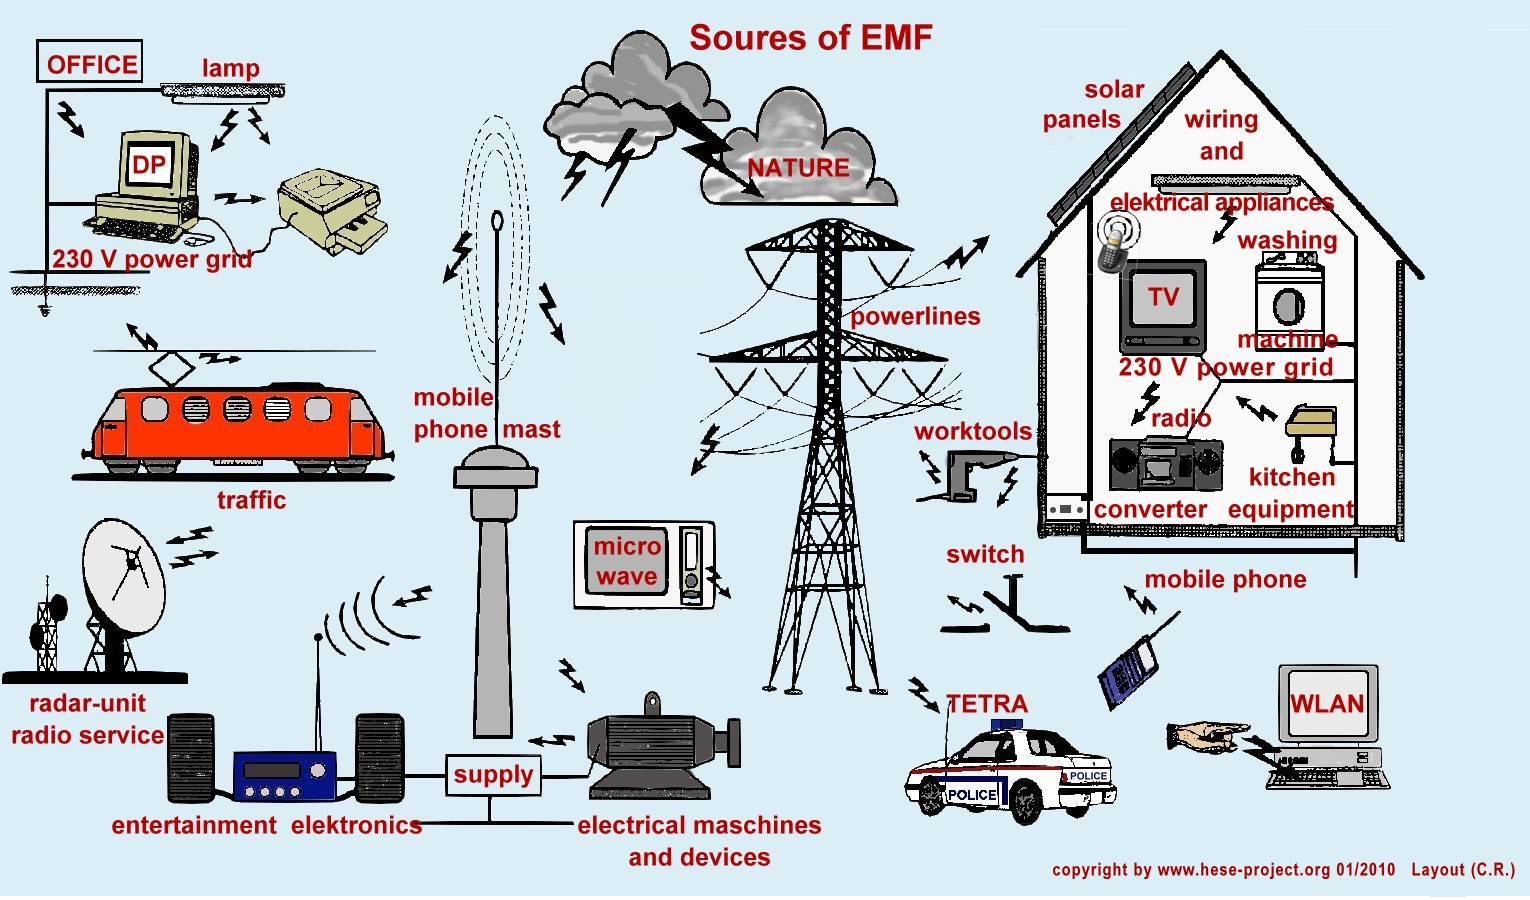 Where does EMF radiation come from